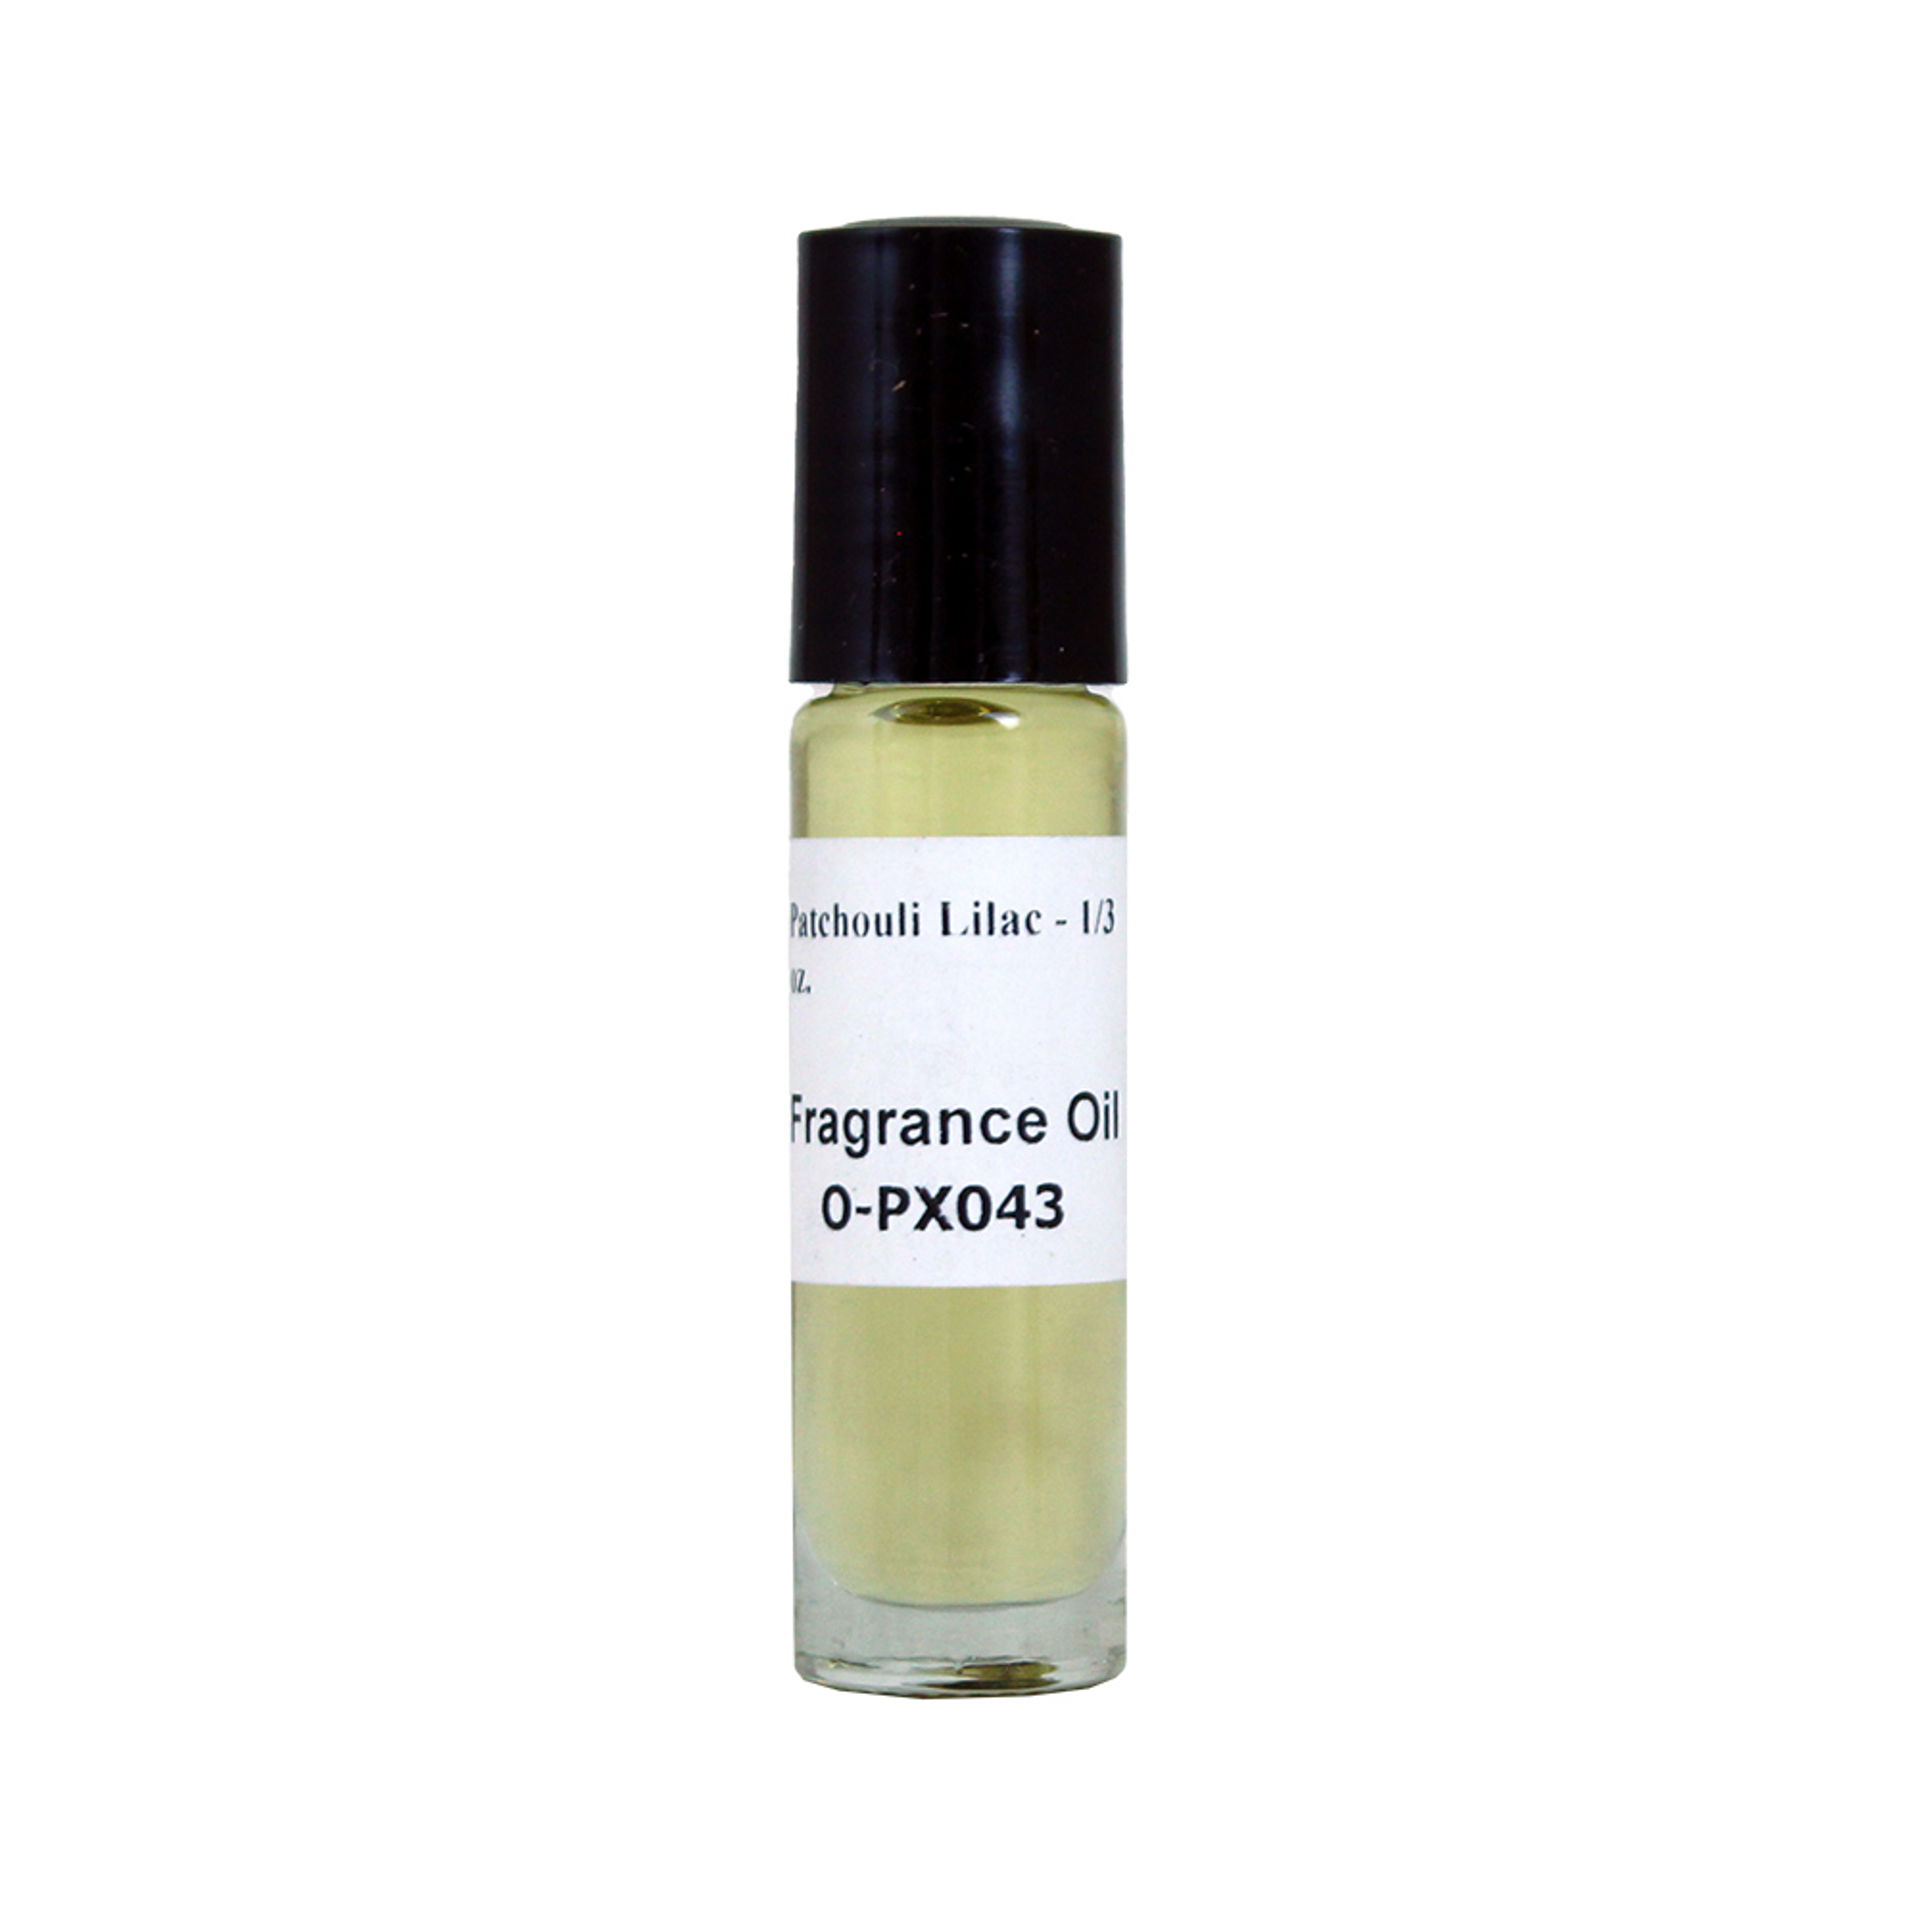 Picture of Patchouli Lilac - 1/3 oz.